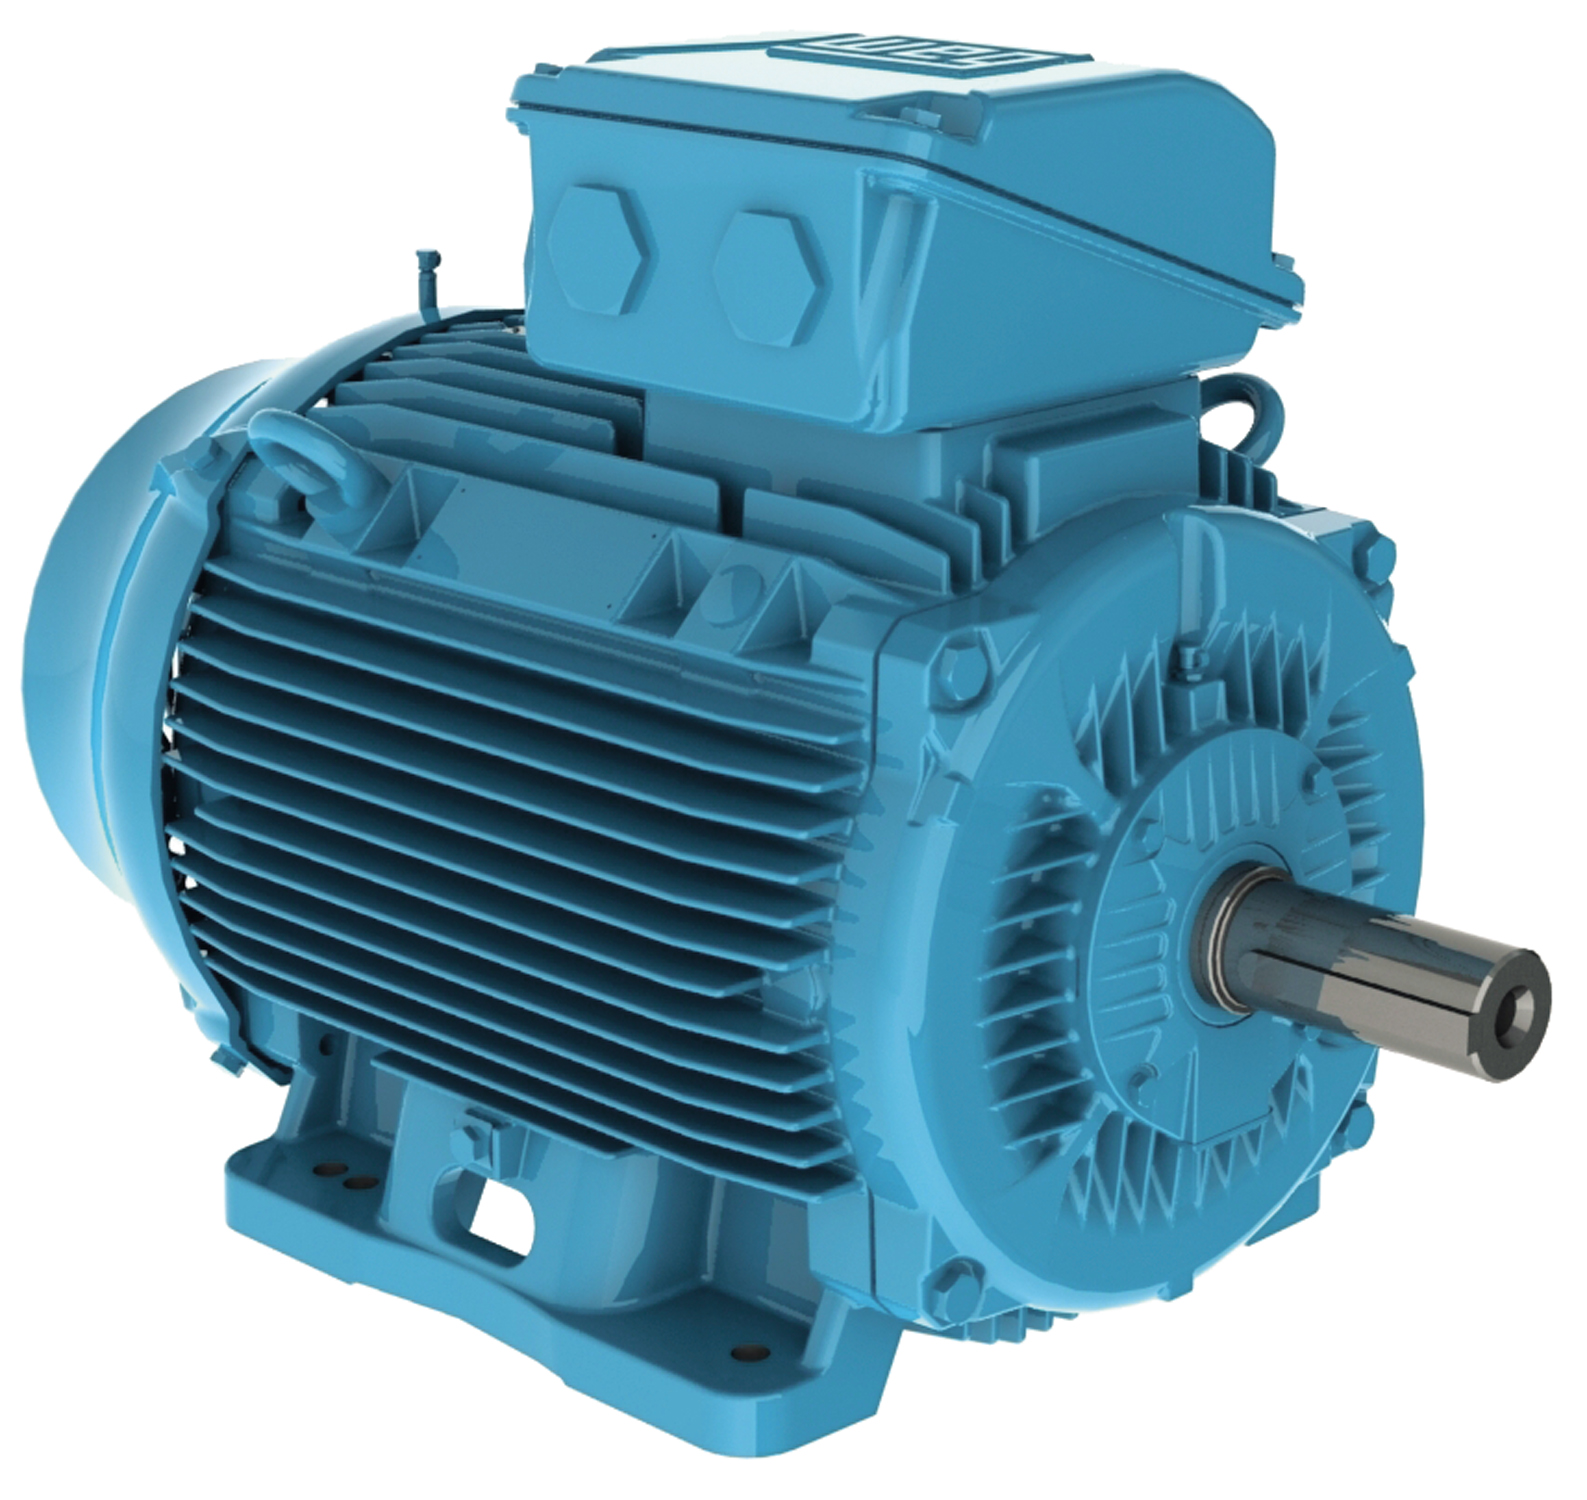 Weg launches wimes compliant w22 line of high efficiency High efficiency motors